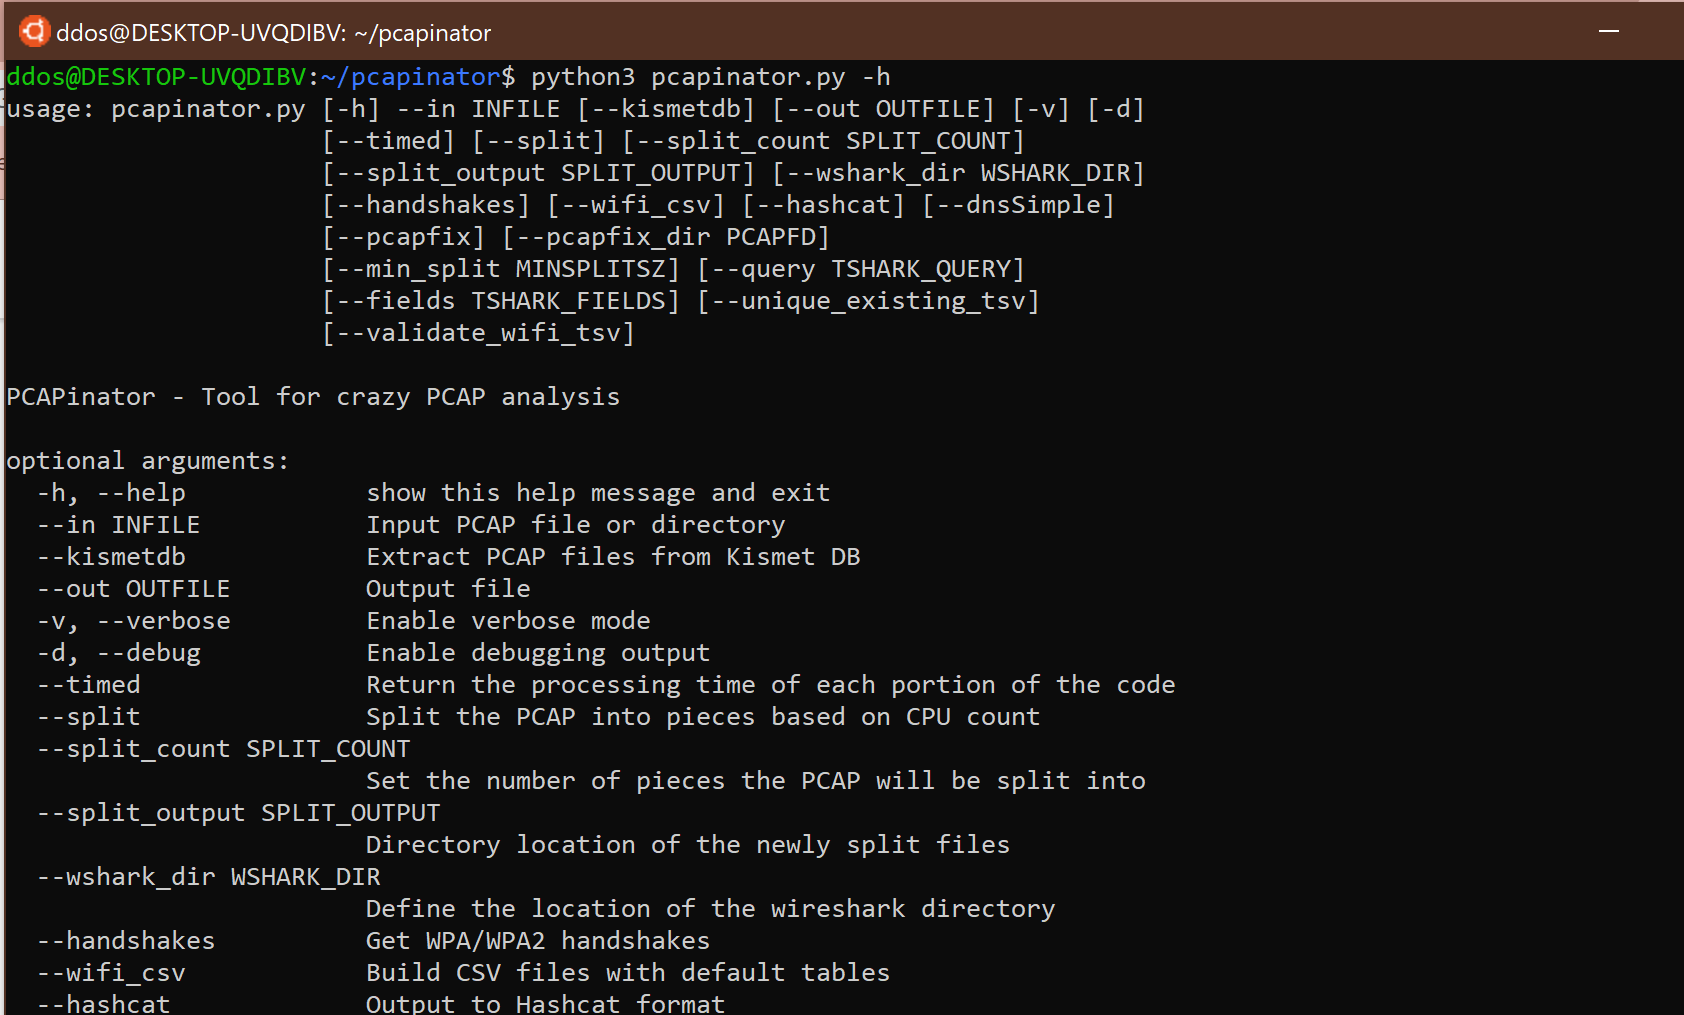 pcapinator: tool for processing a lot of pcaps using tshark